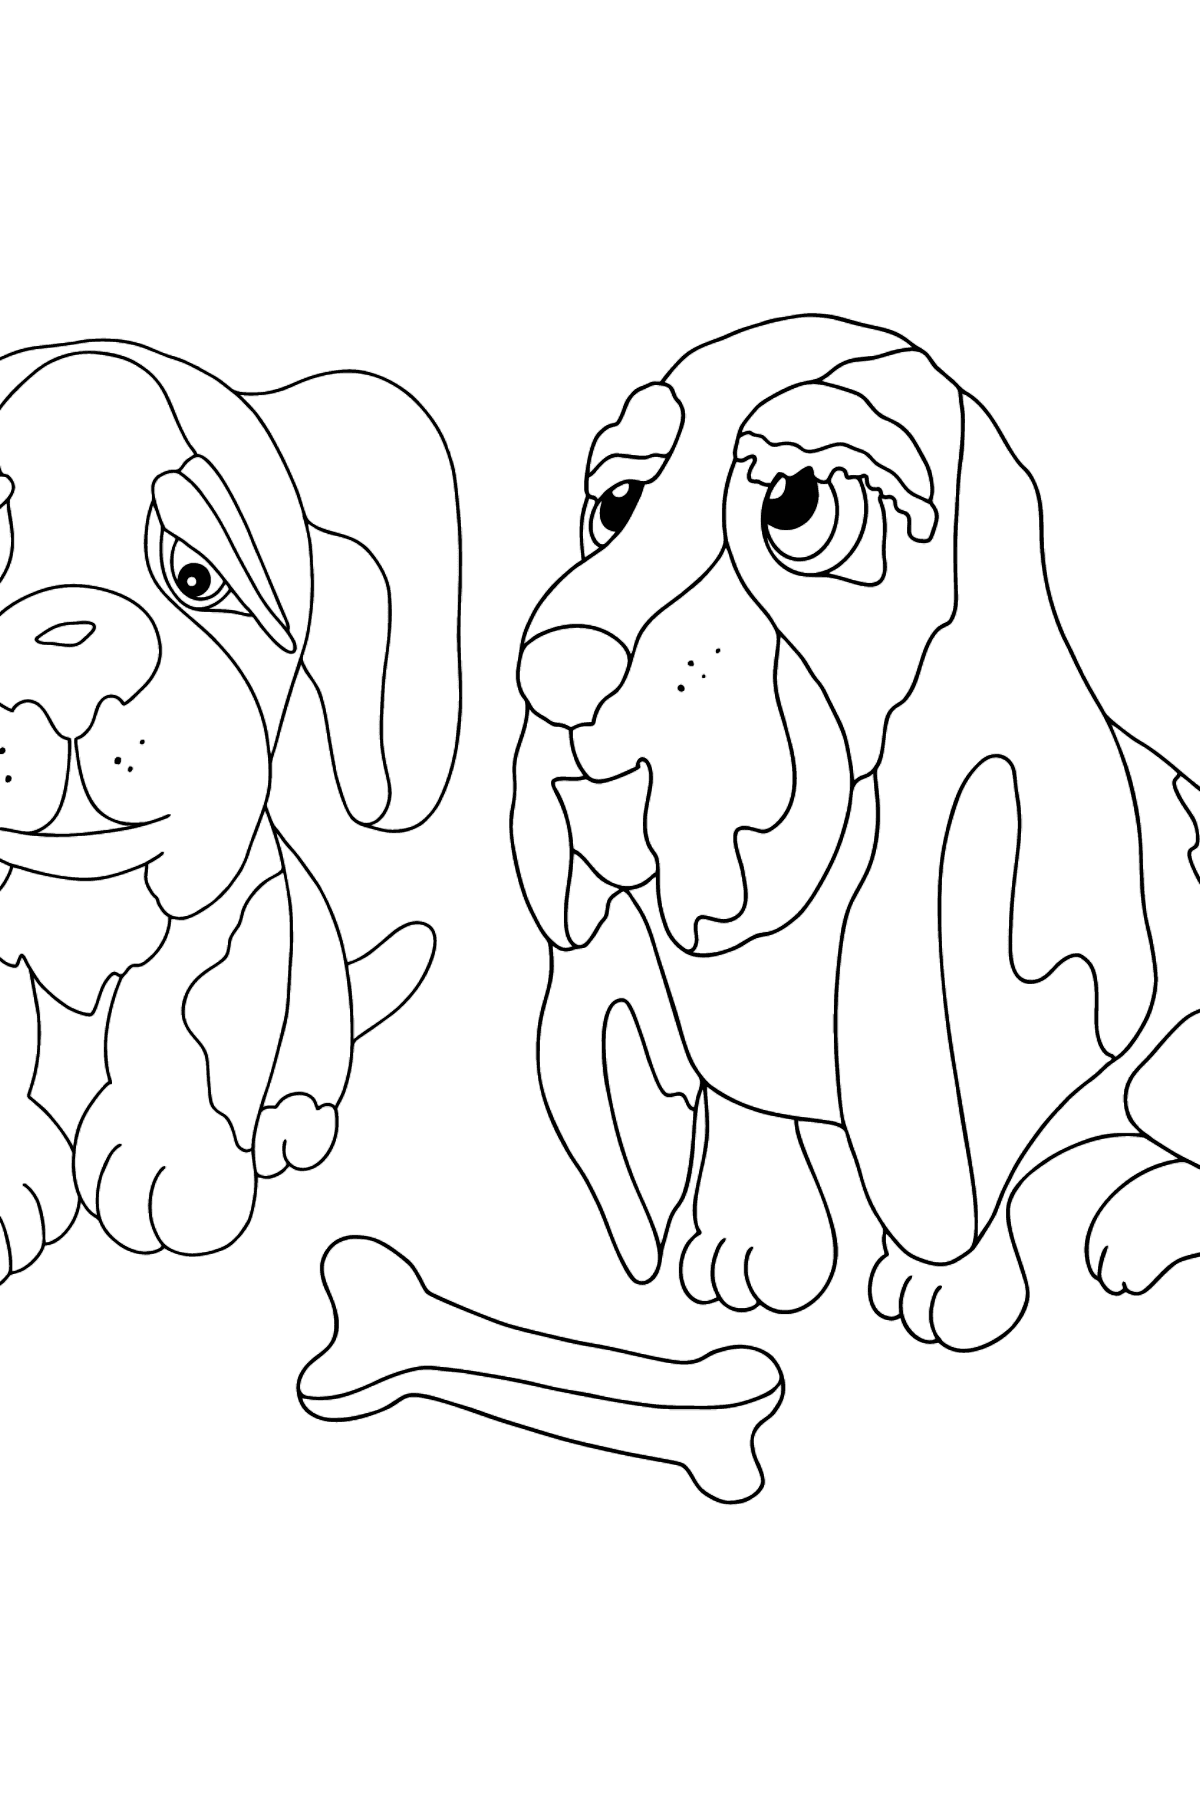 Coloring Page - Dogs are Looking at a Bone - Coloring Pages for Kids